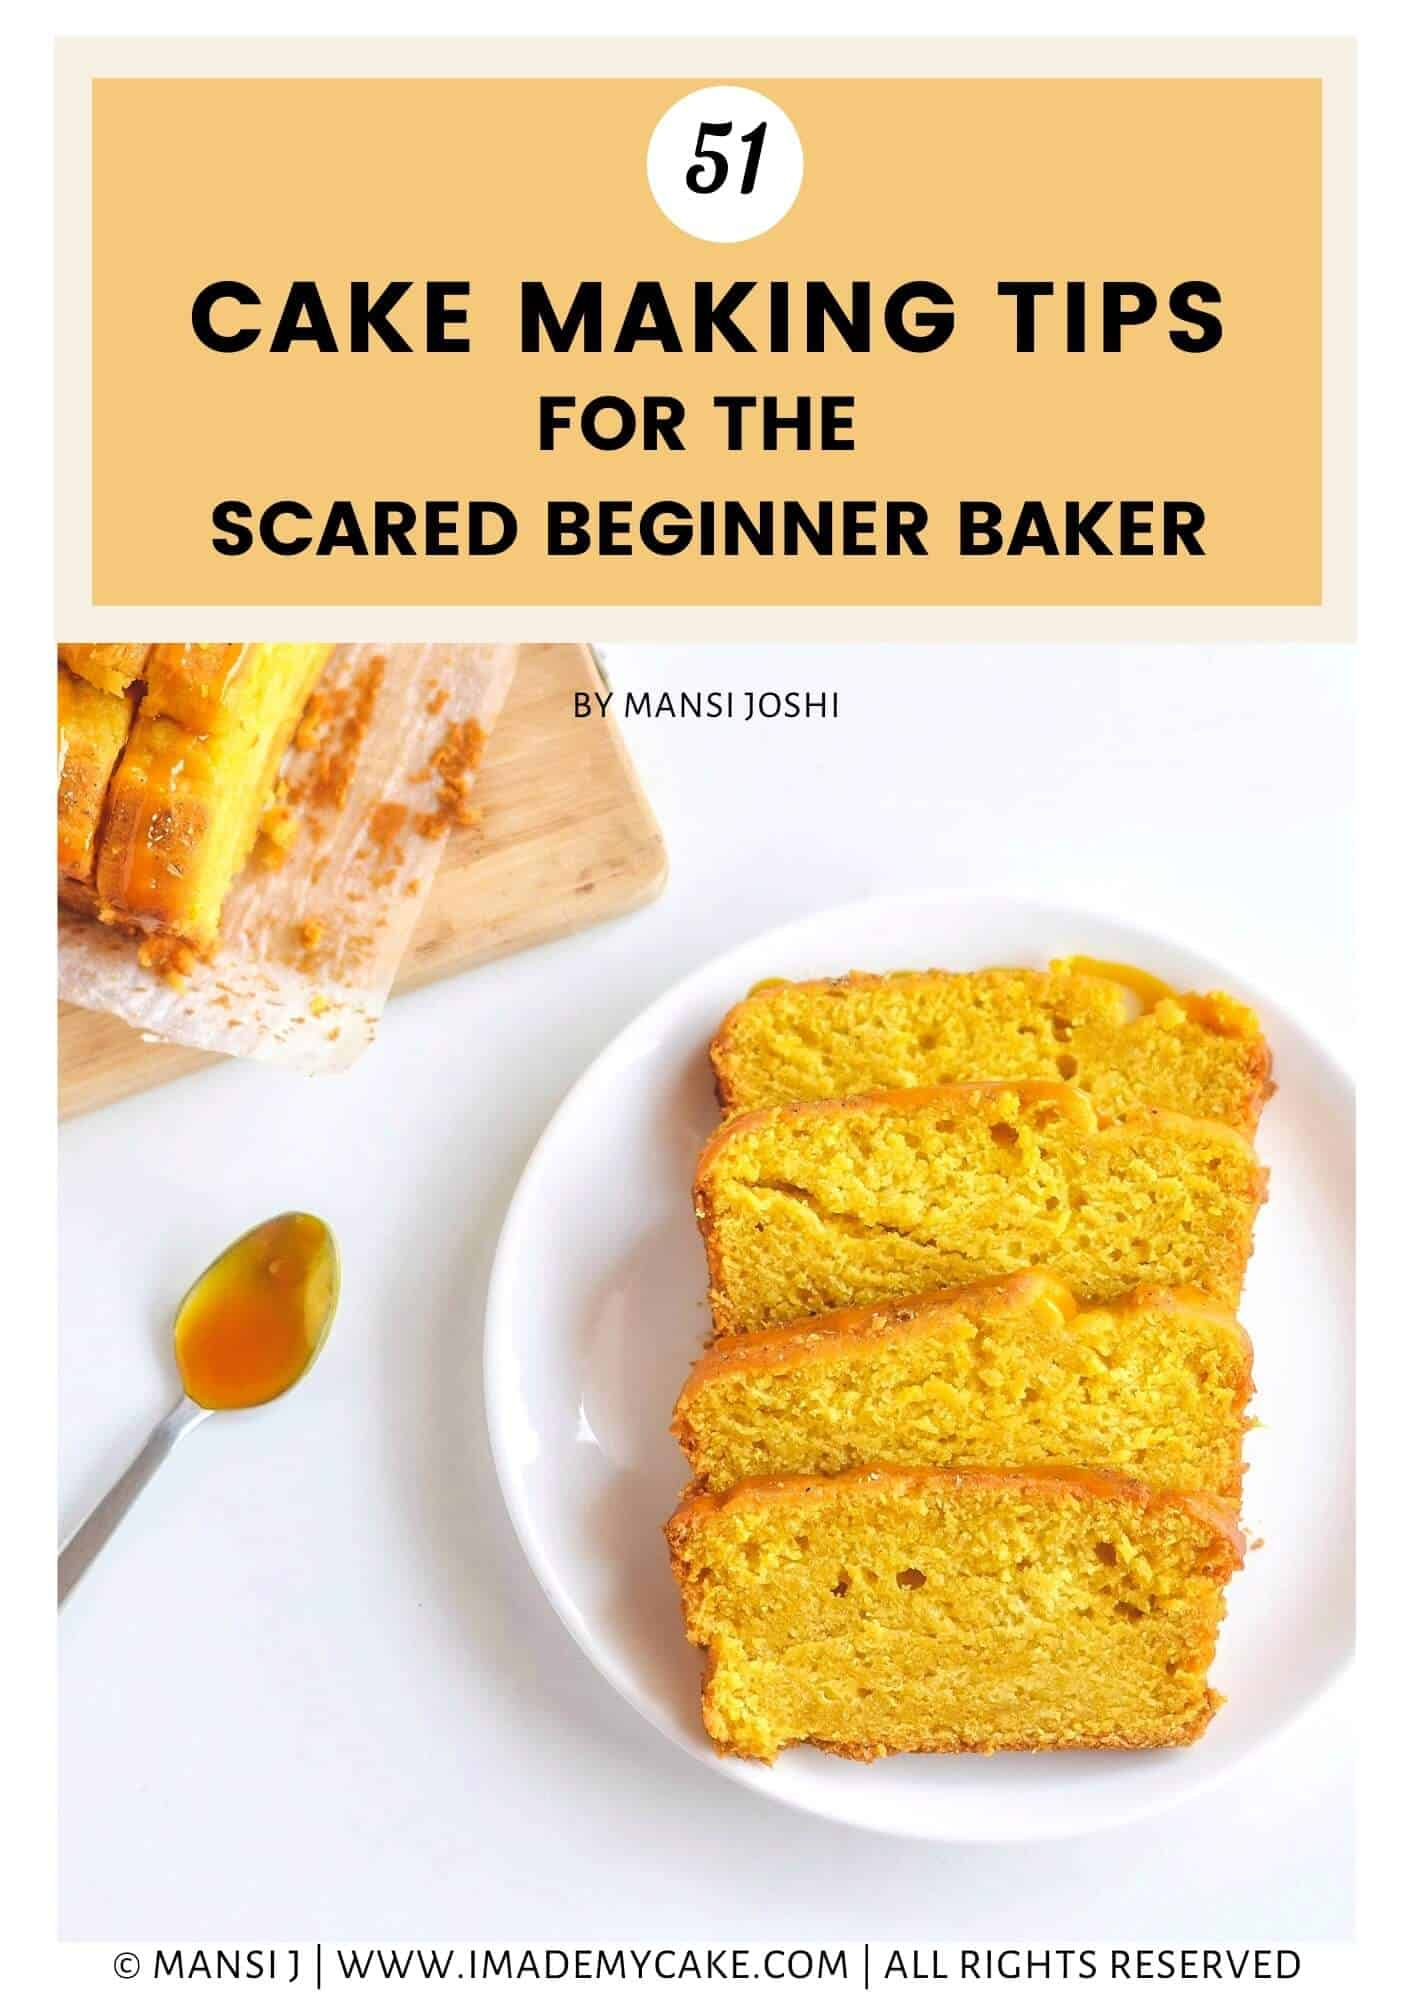 Cake Slices on a White Plate baked perfectly with the help of cake making tips